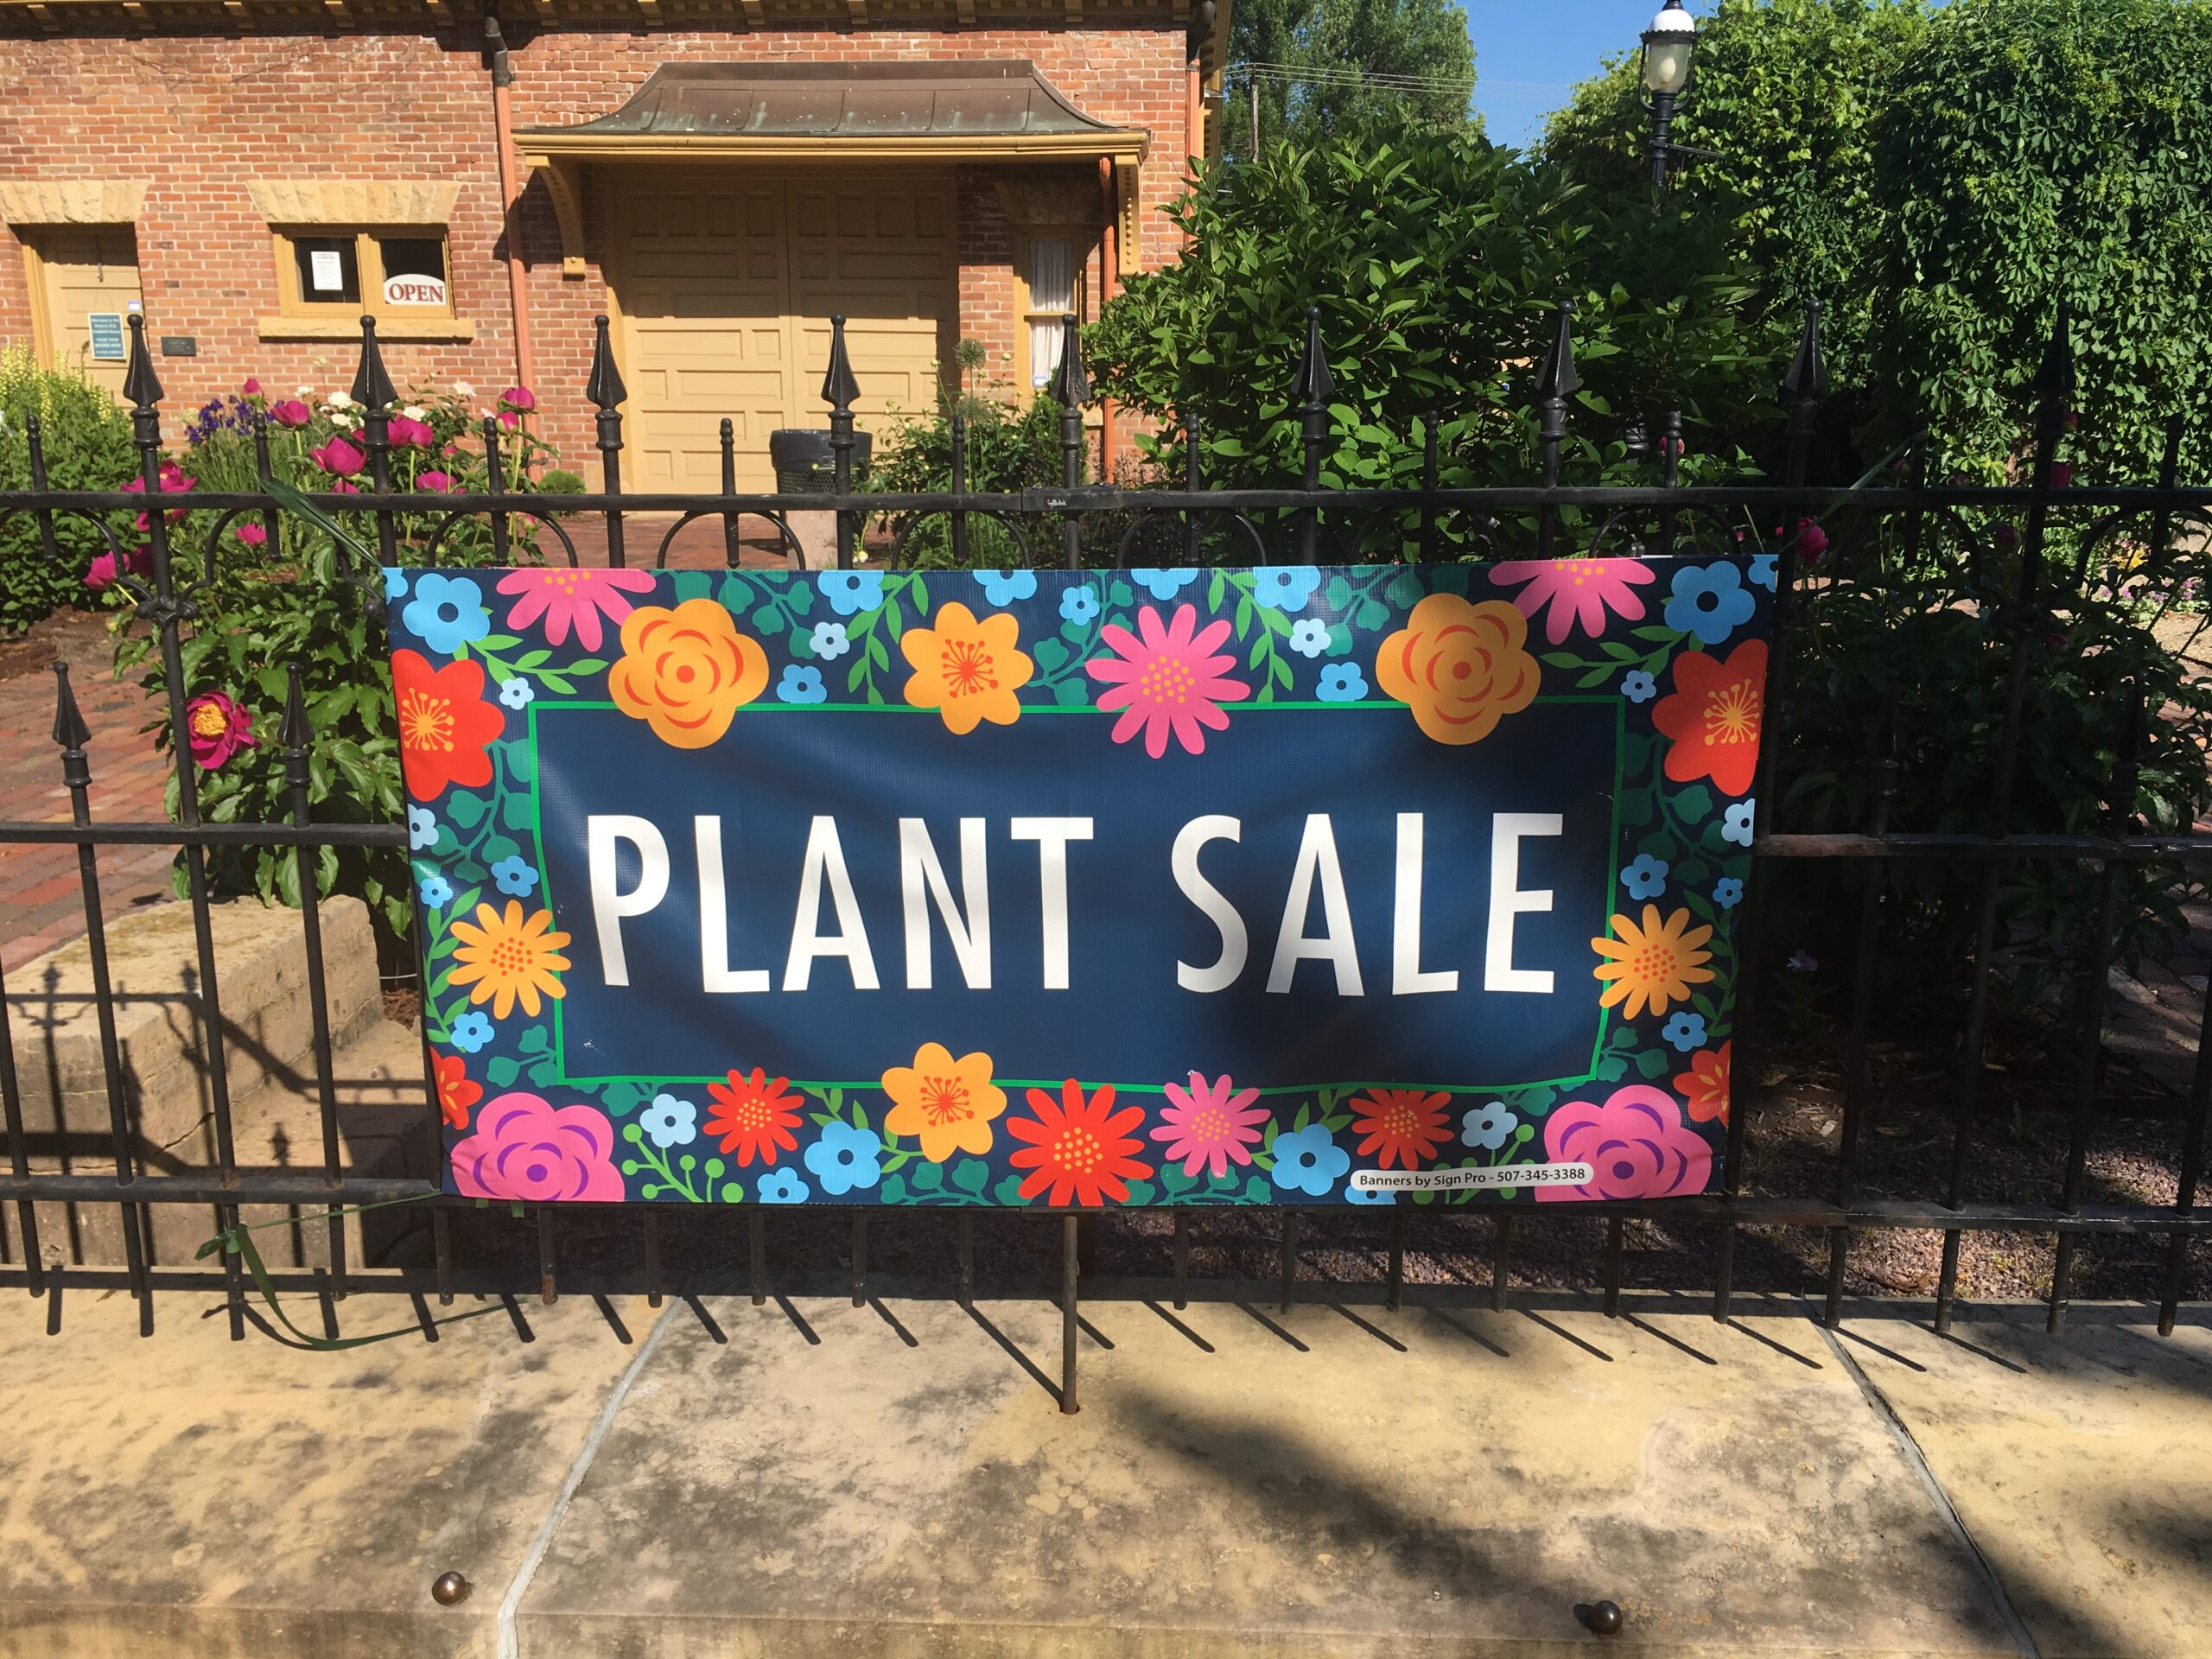 Twilight Garden Club Plant Sale Sign at the Hubbard House